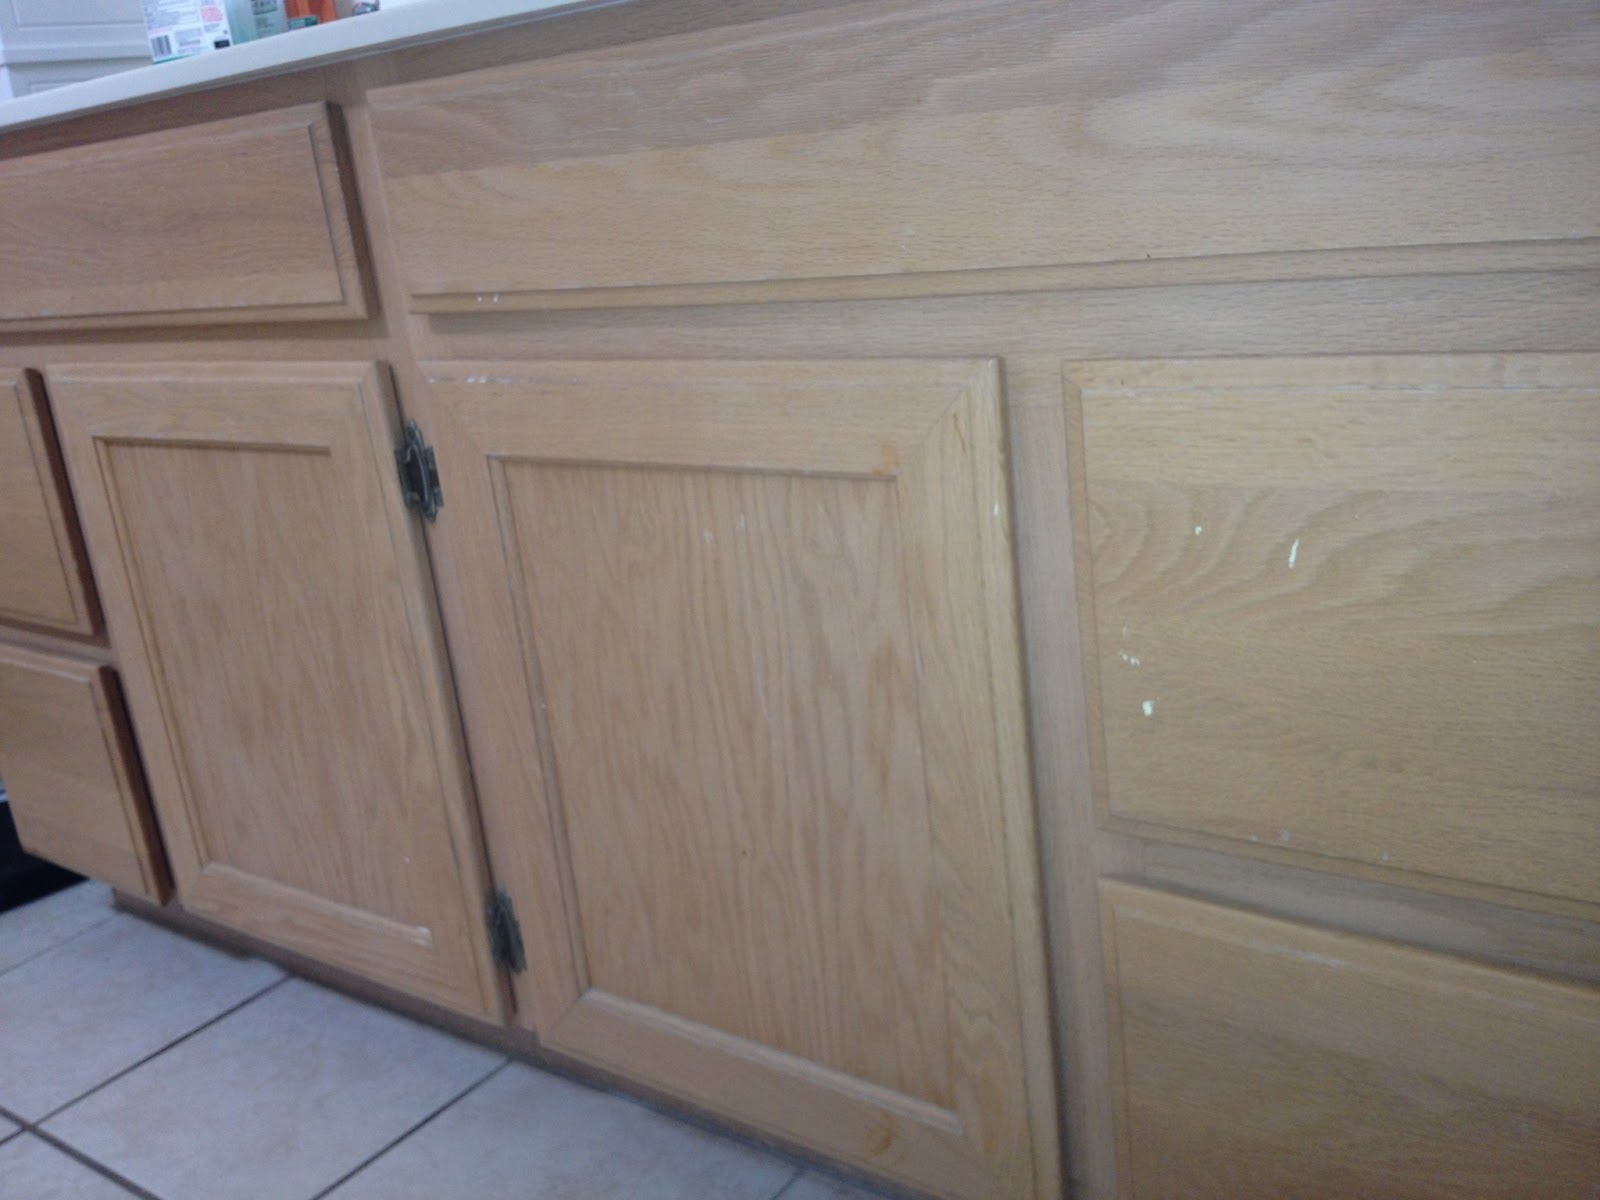 Gel Stain For Cabinets How To Gel Stain Your Kitchen Cabinets Stained Cabinets